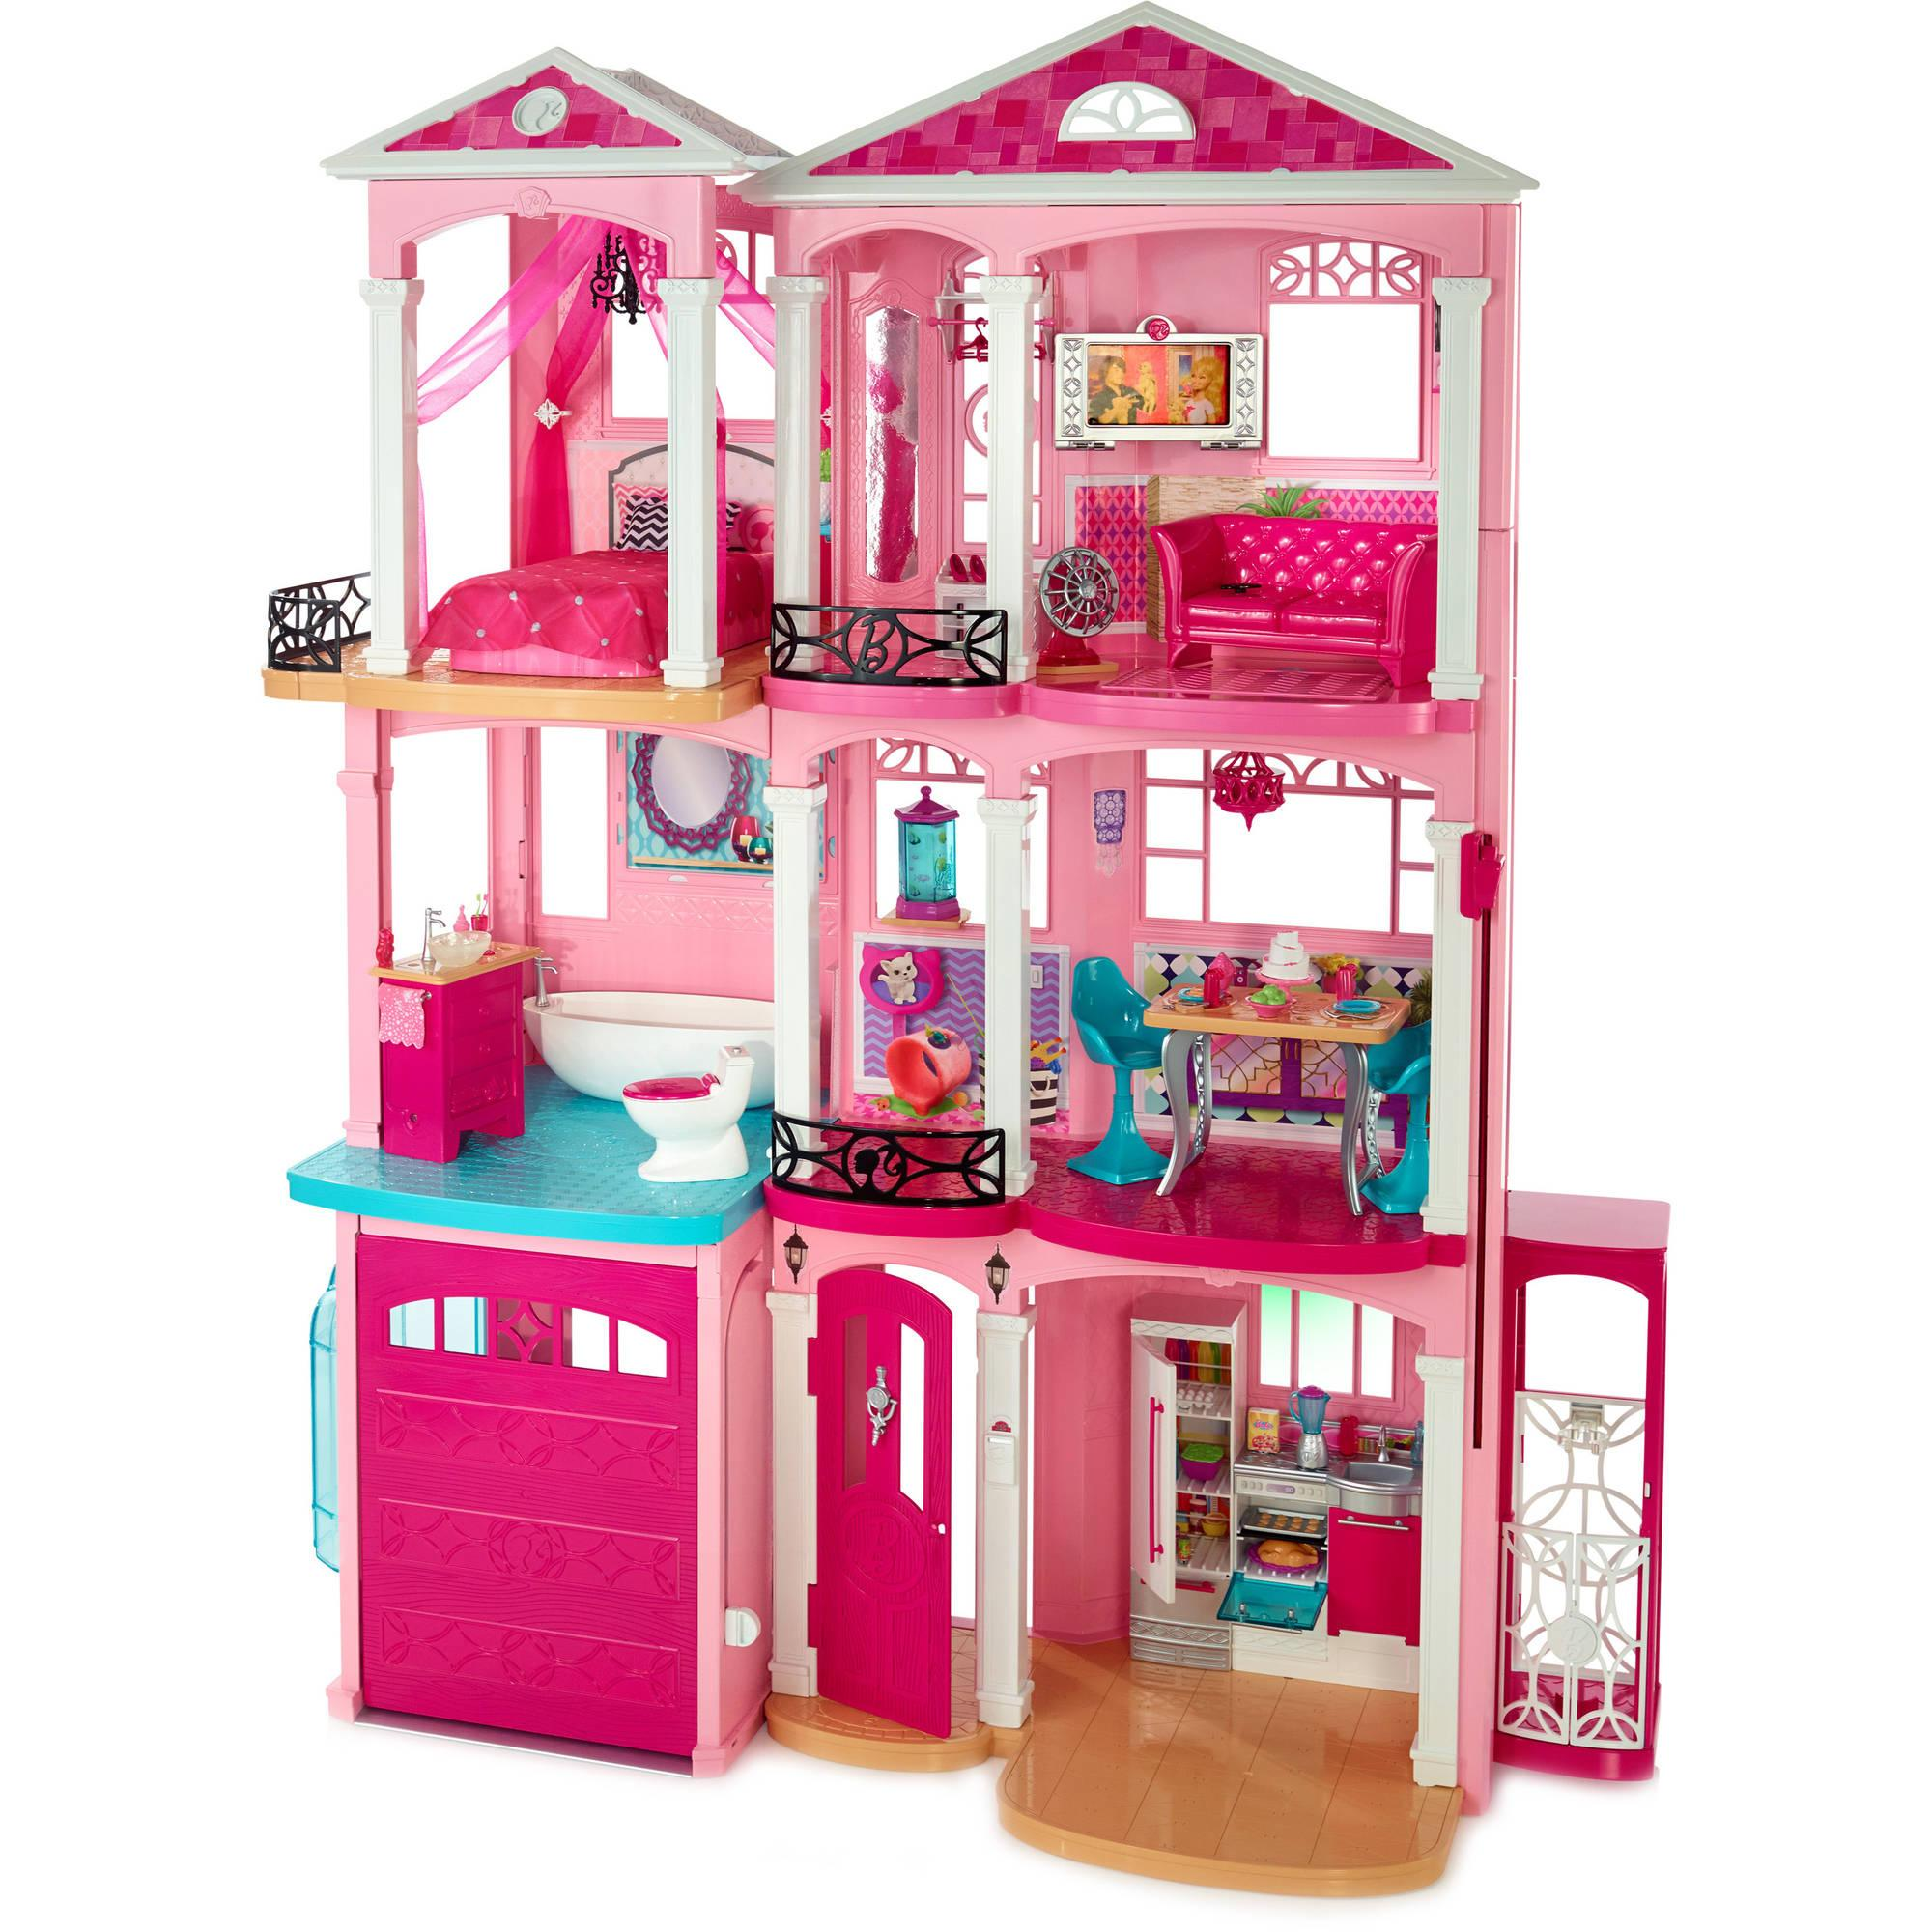 Compact Yet Luxurious Dream Home For A Pink Loving Fashionista